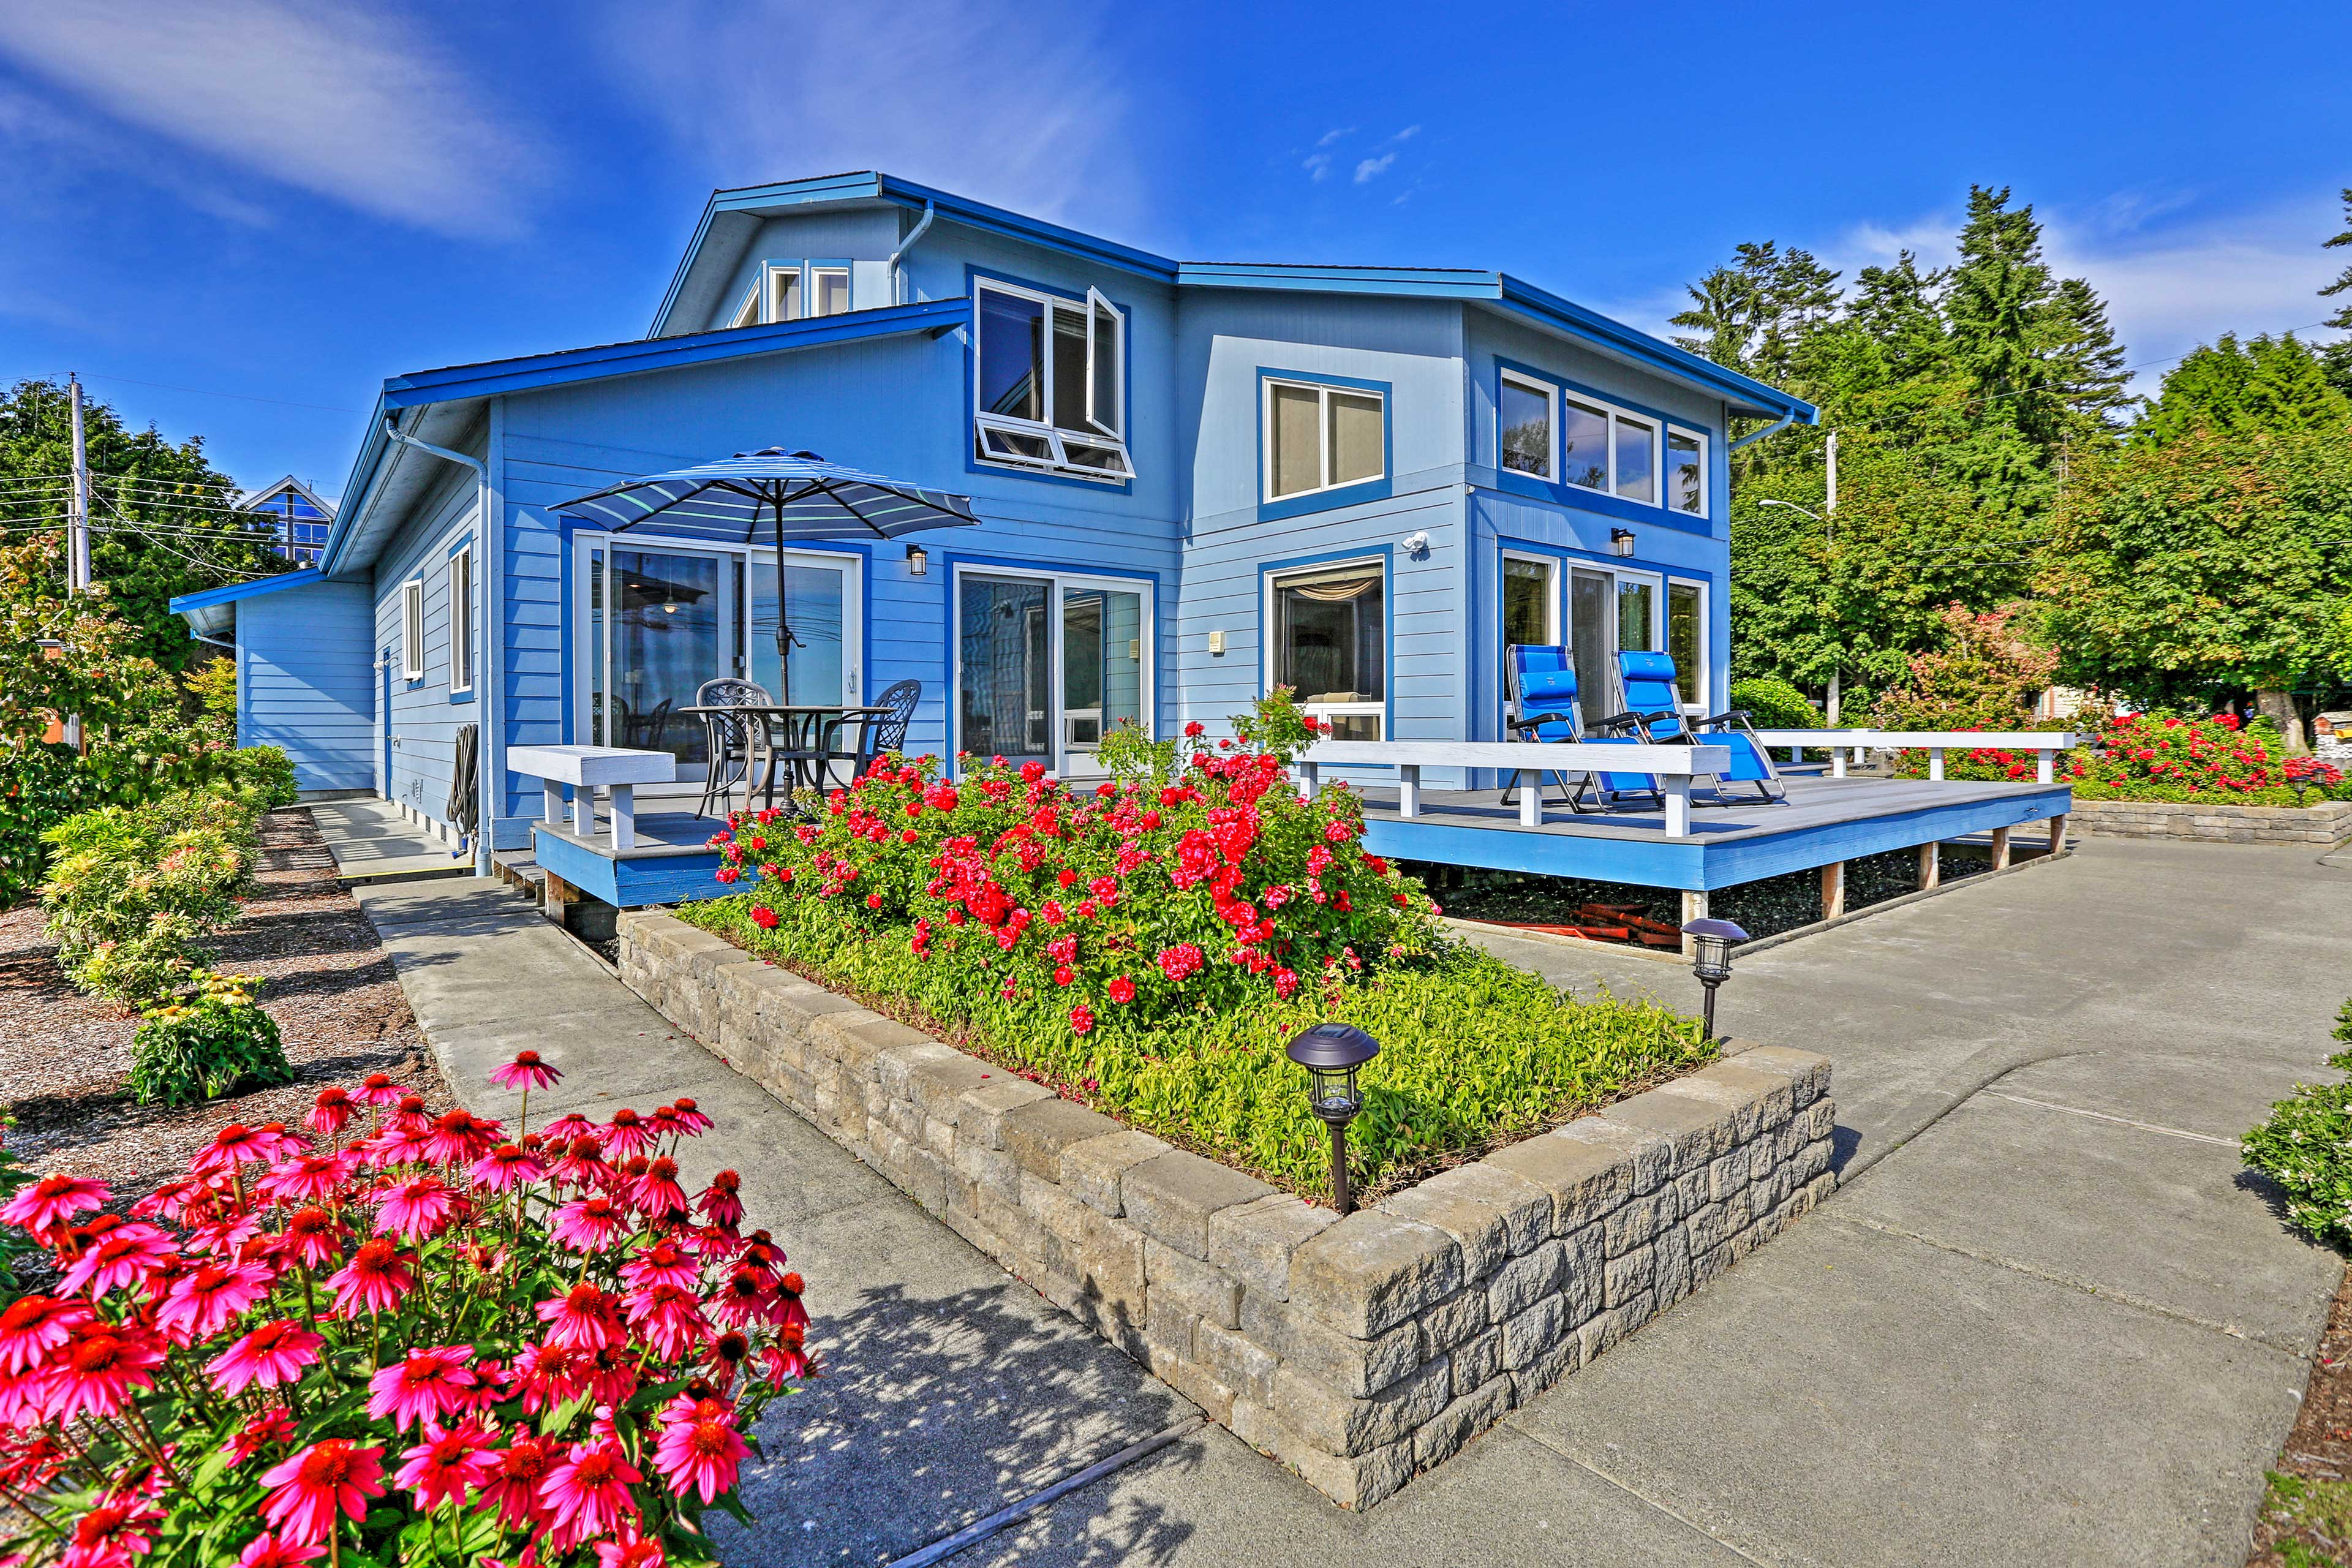 This 3-bed vacation rental sleeps 10 for a Pacific Northwest getaway!